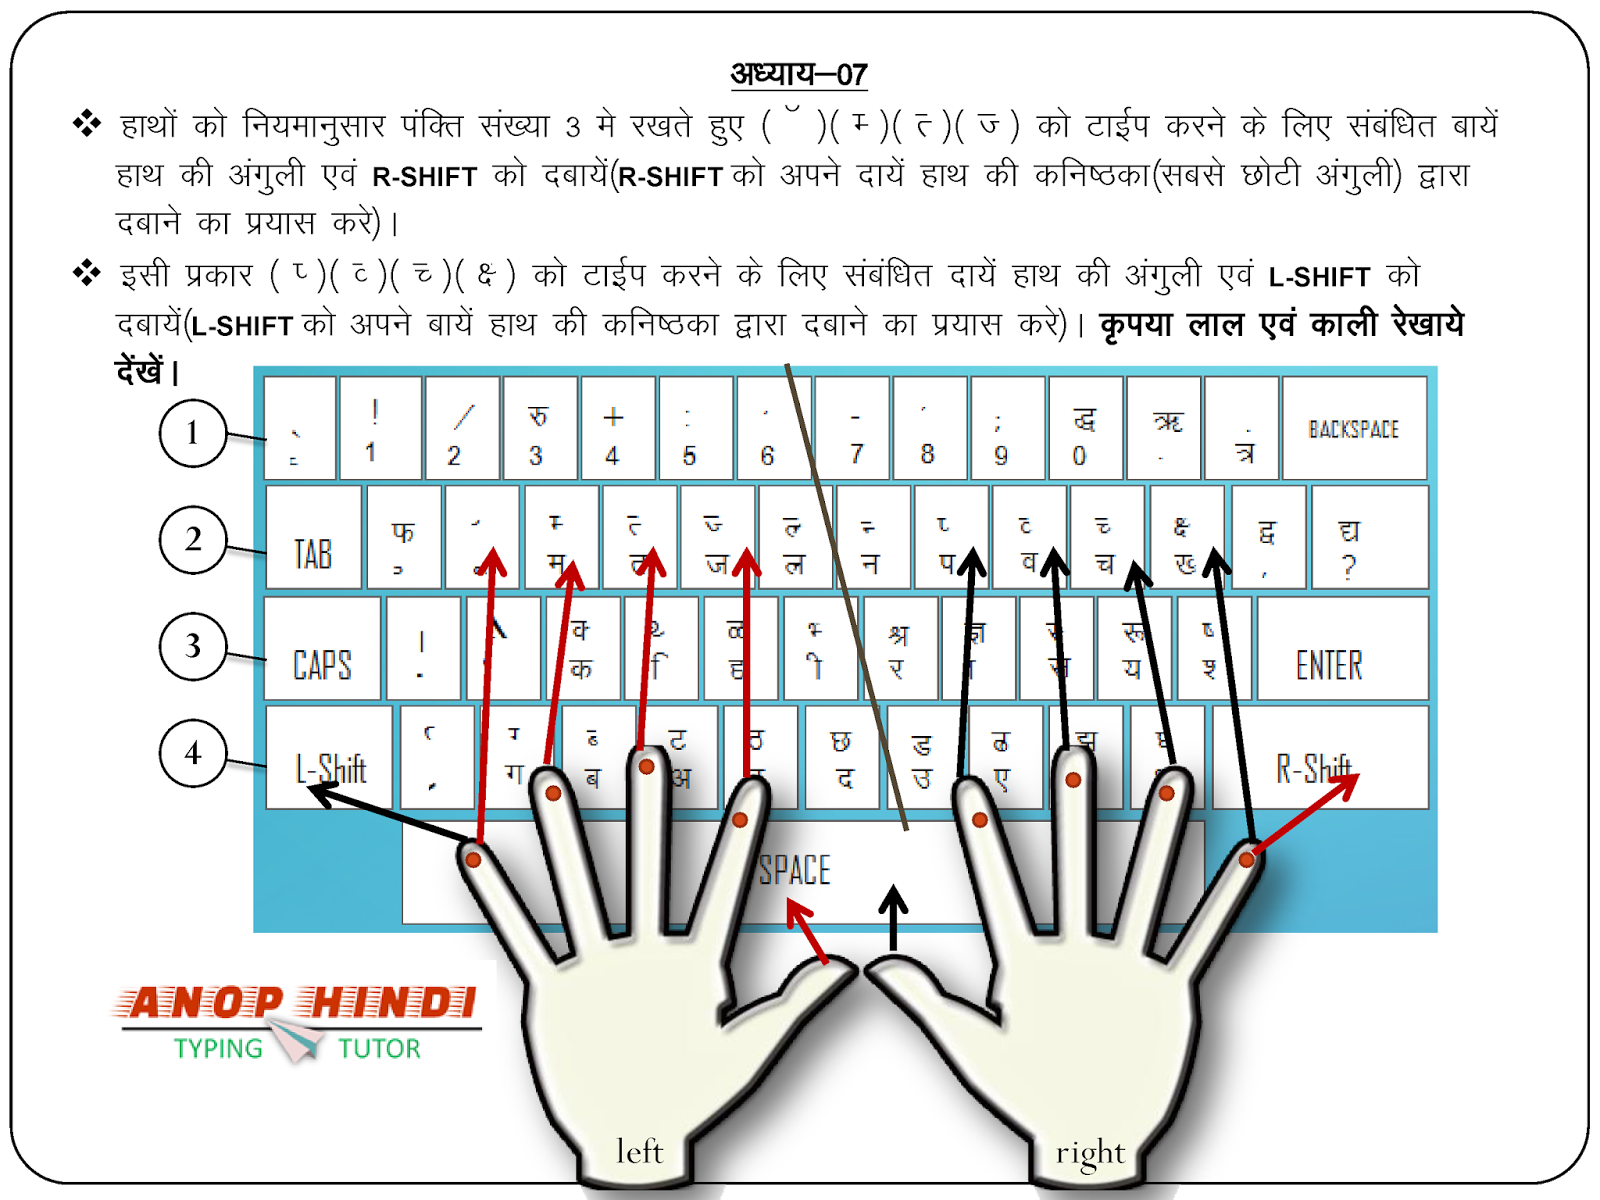 Anop Hindi Typing Tutor - Lesson 7